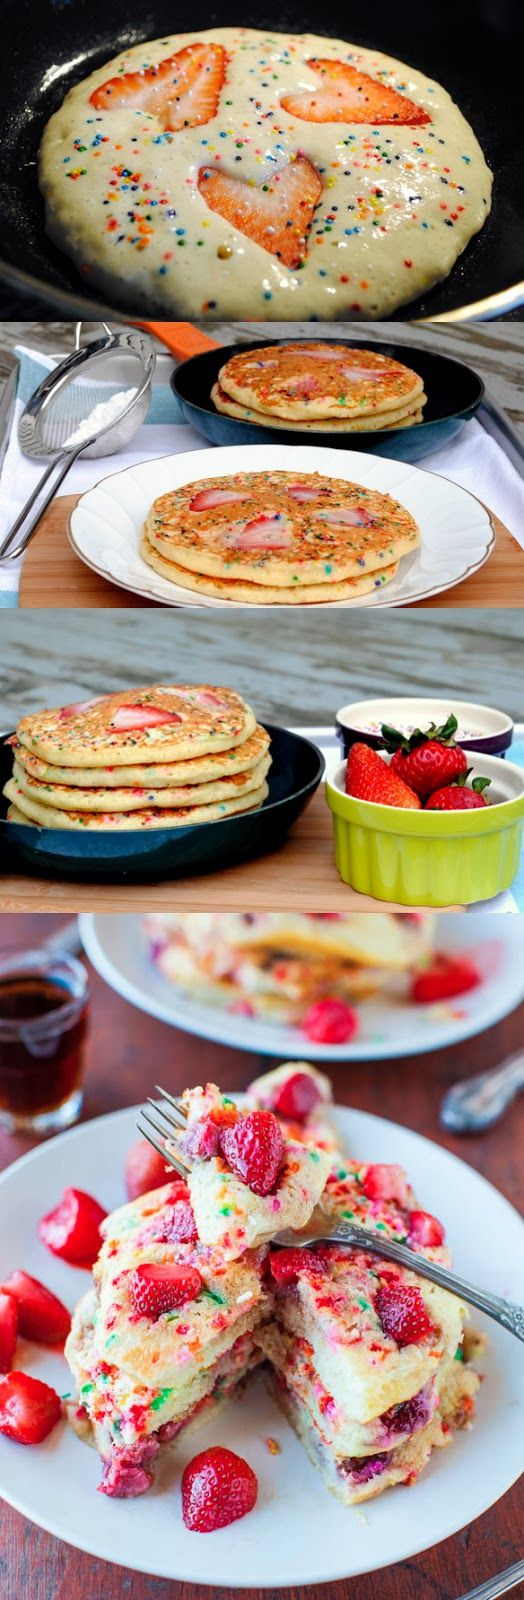 Strawberry Funfetti Pancakes: The perfect Valentine's Day breakfast. #valentinesday #recipe